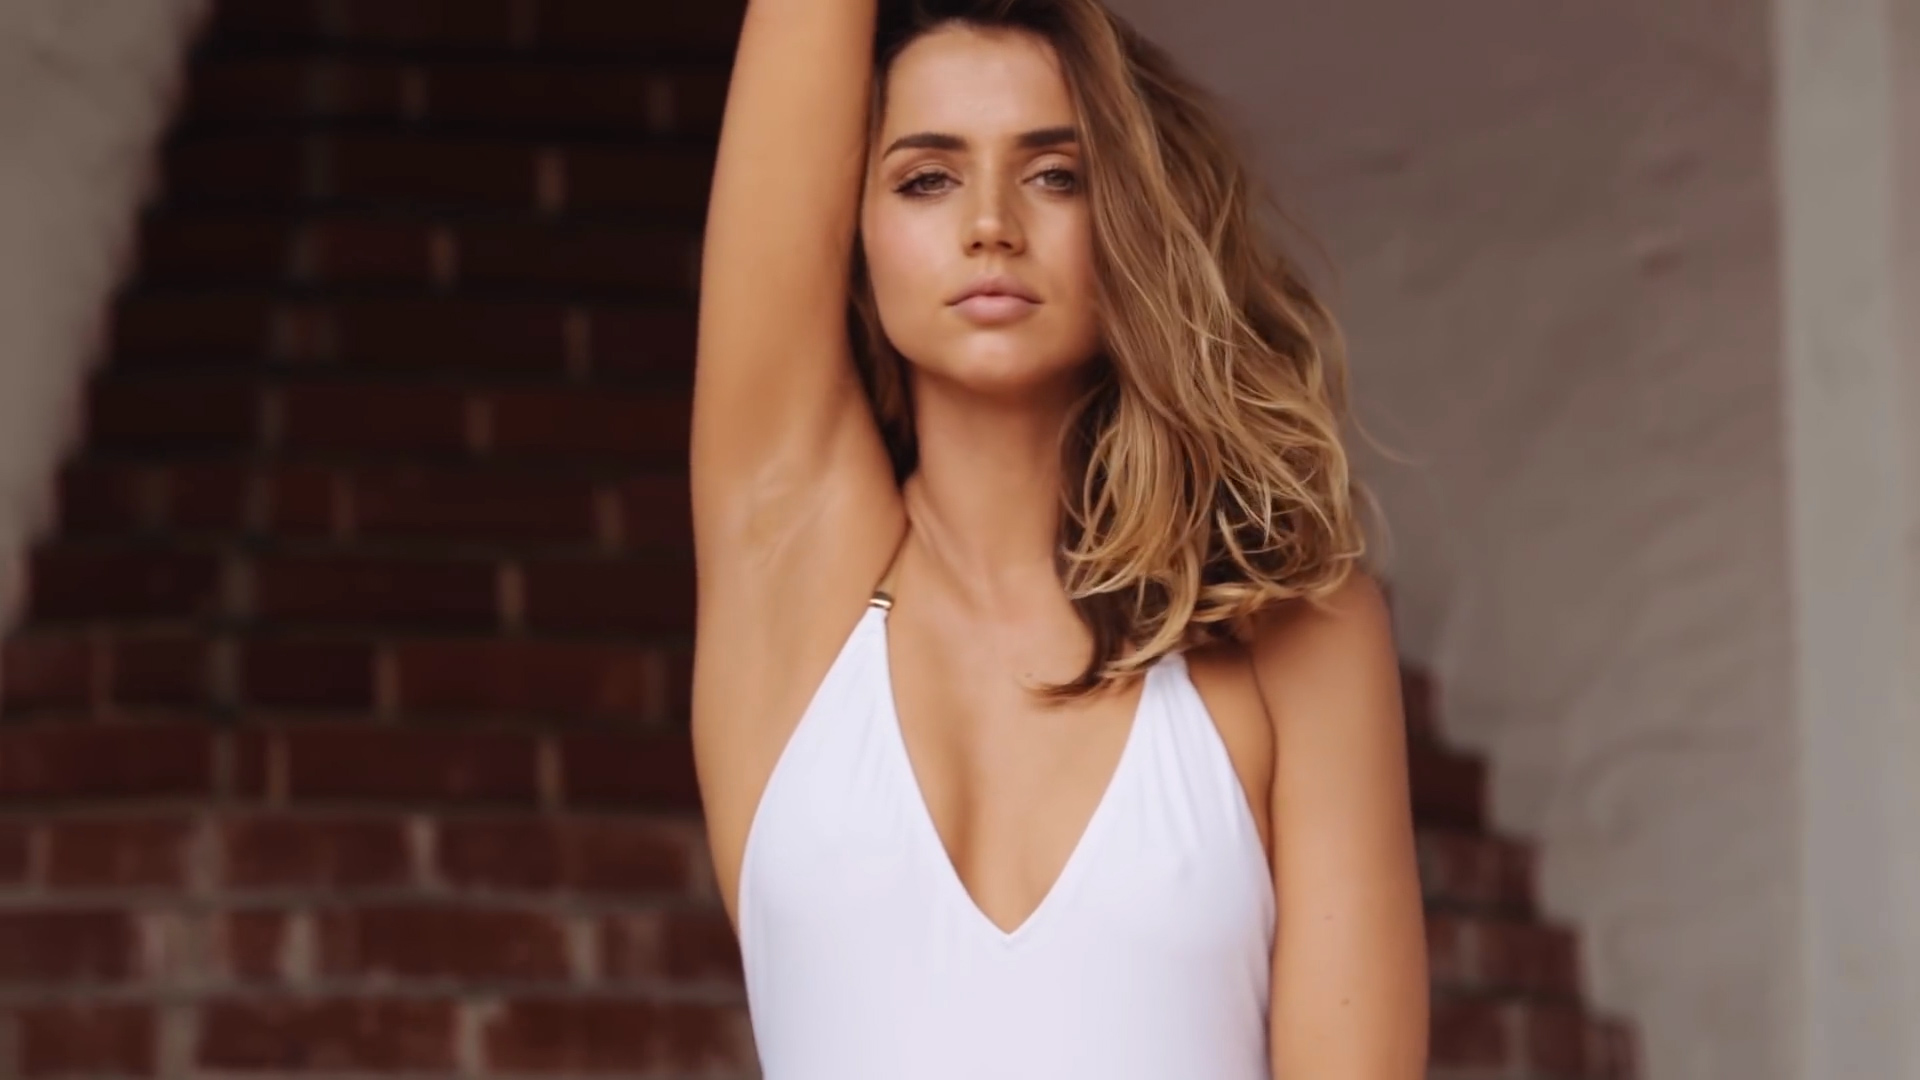 Photo Of Ana De Armas 873291 Upload Date 2016 08 25 Number Votes 8 There Are 82 More Pics In The Gallery